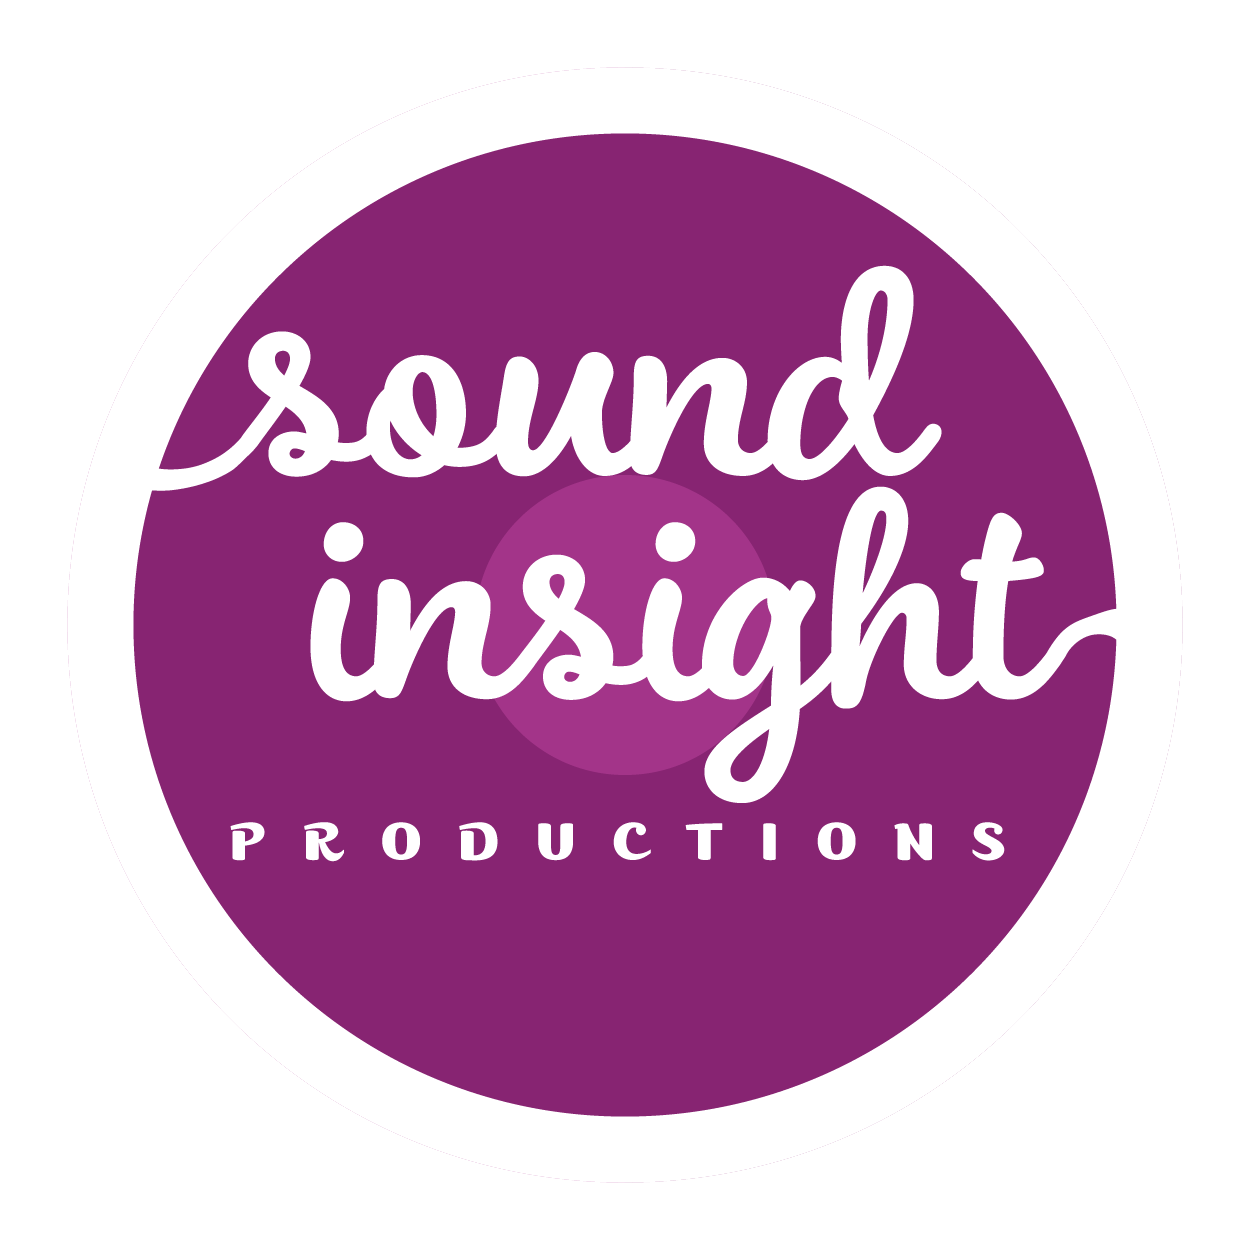 Sound Insight Productions